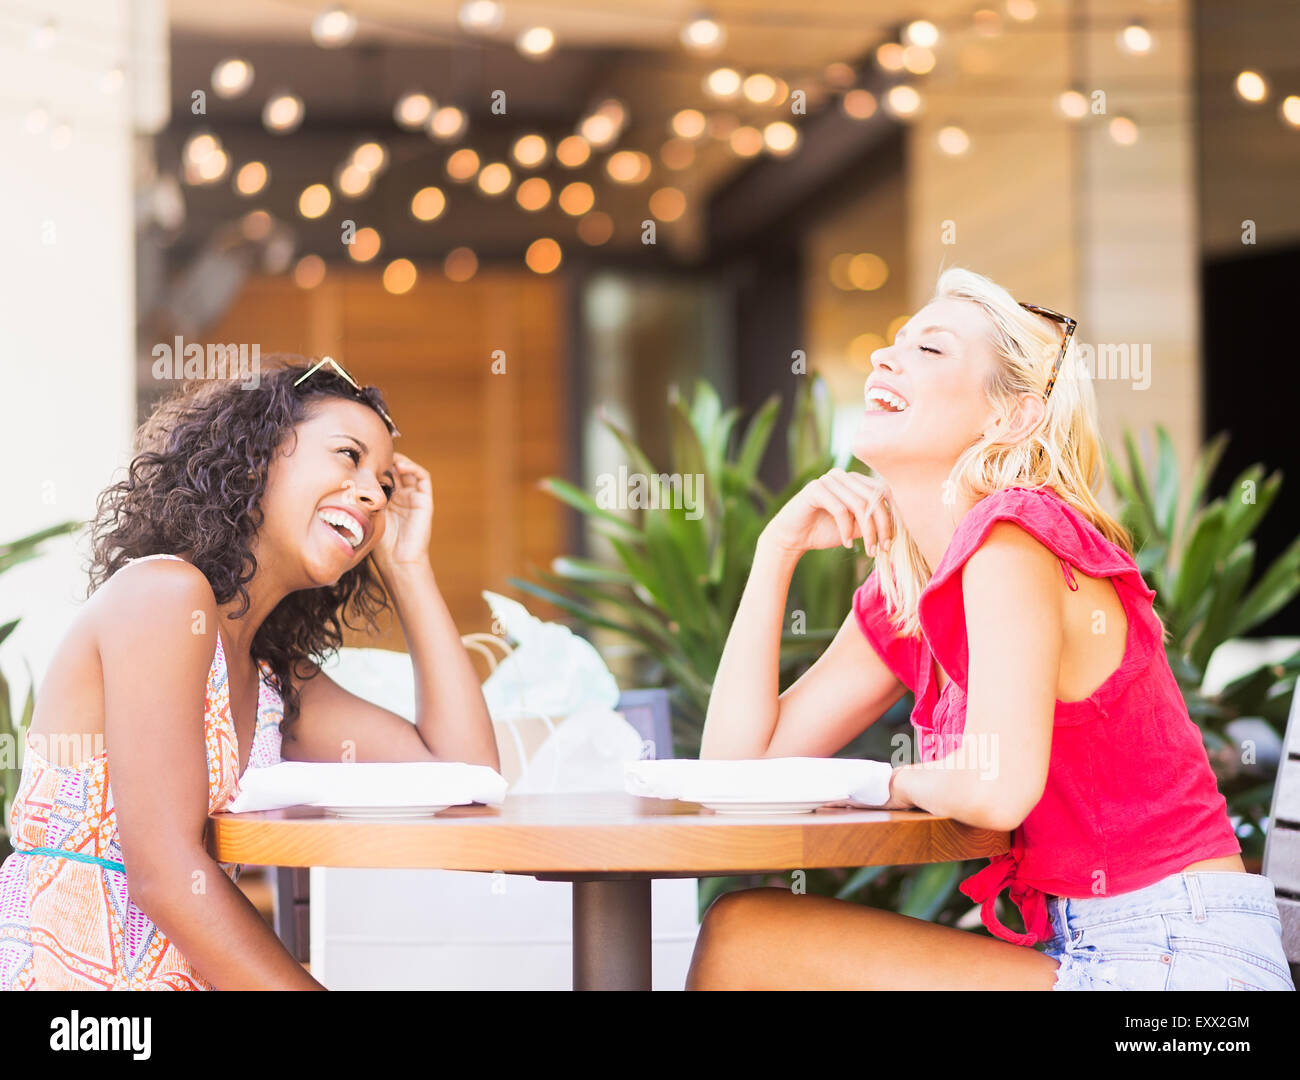 Female friends laughing in street cafe Photo Stock